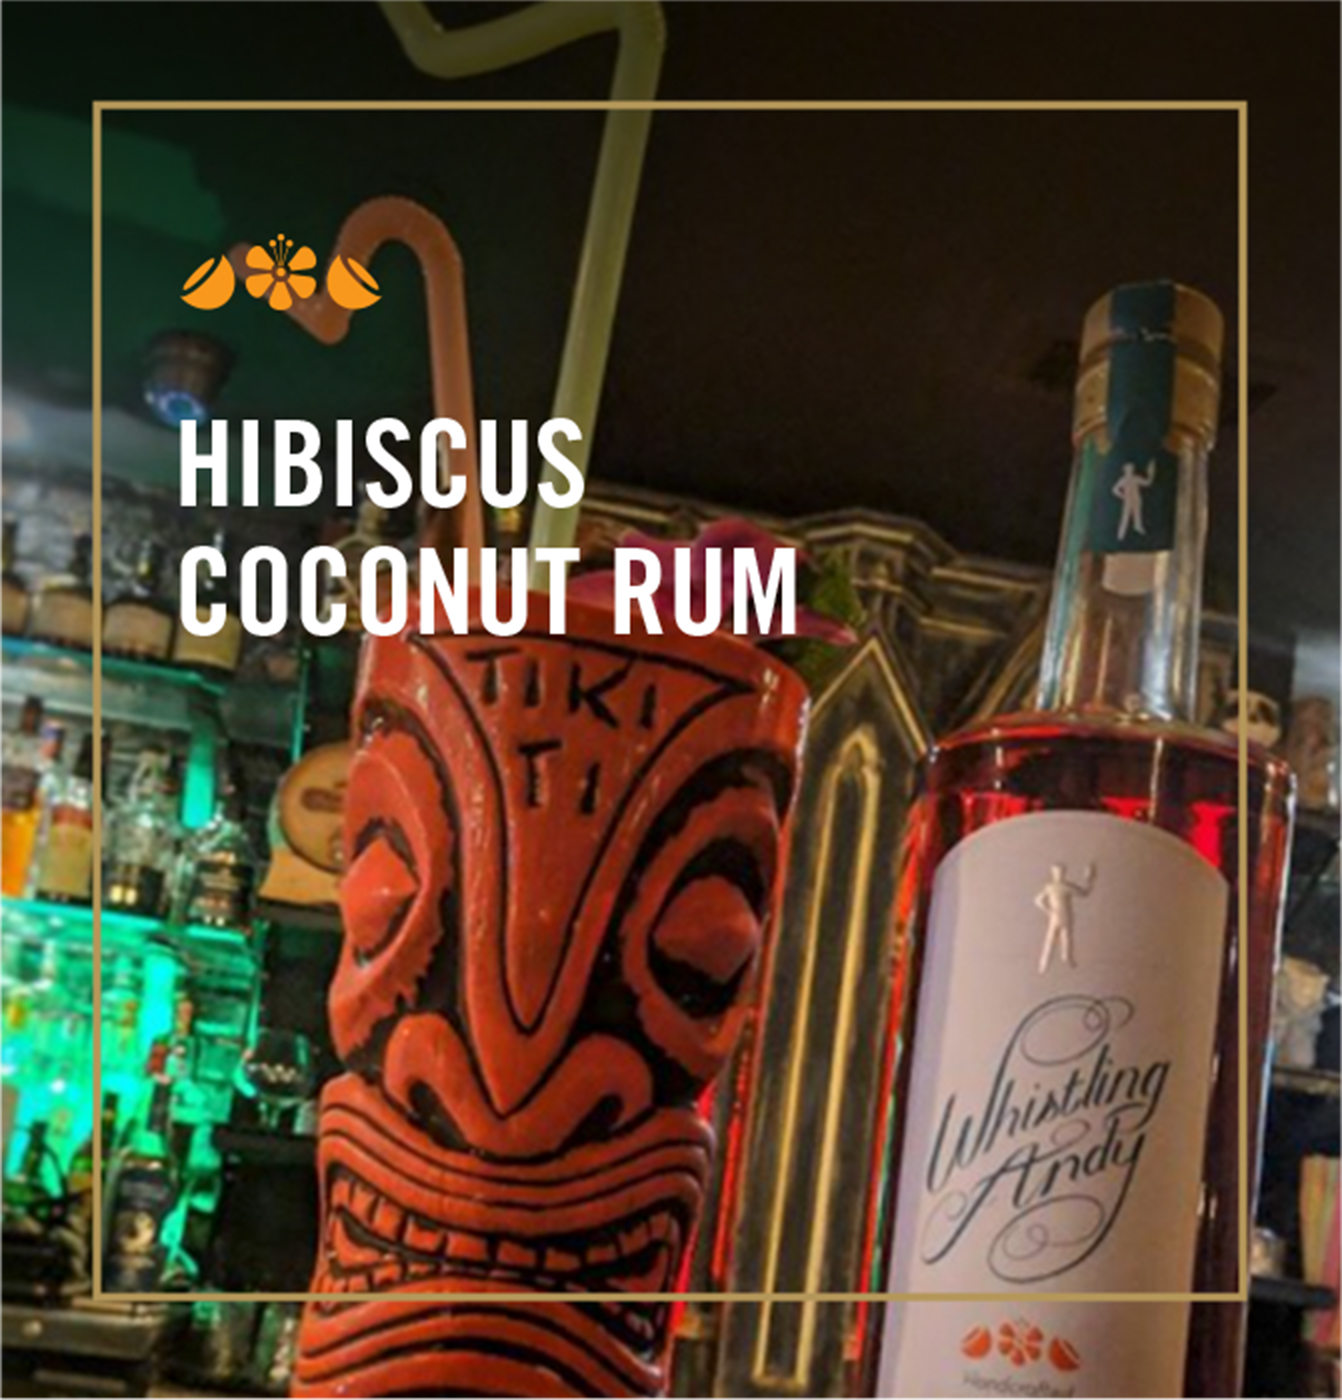 Hibiscus Coconut Rum Cocktails - Whistling Andy Distillery